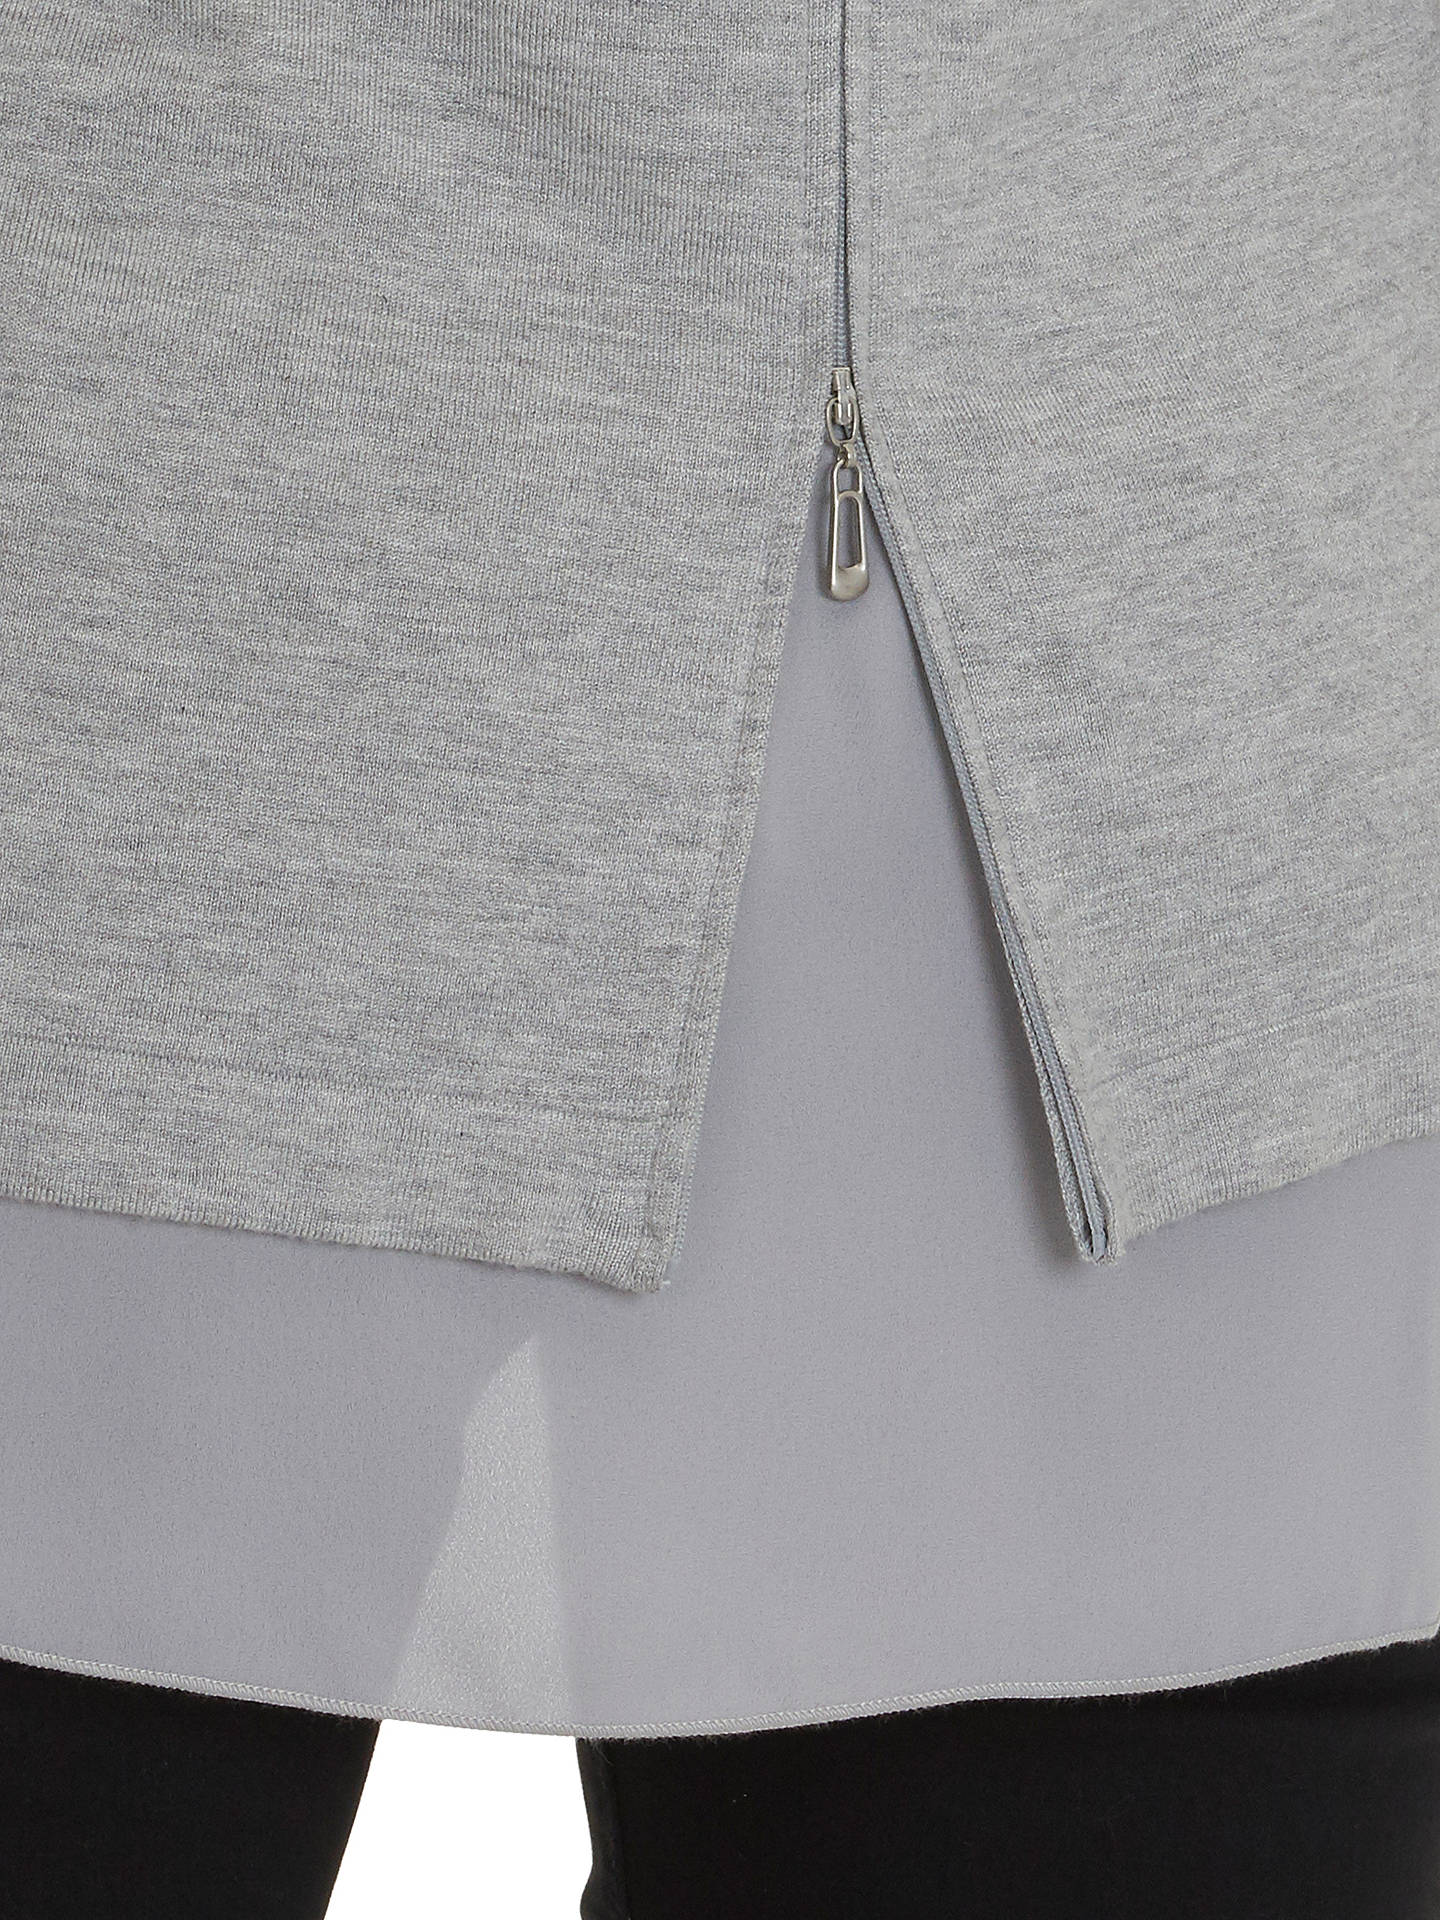 BuyBetty Barclay Oversized Double Layer Jumper, Light Grey/Melange, 8 Online at johnlewis.com